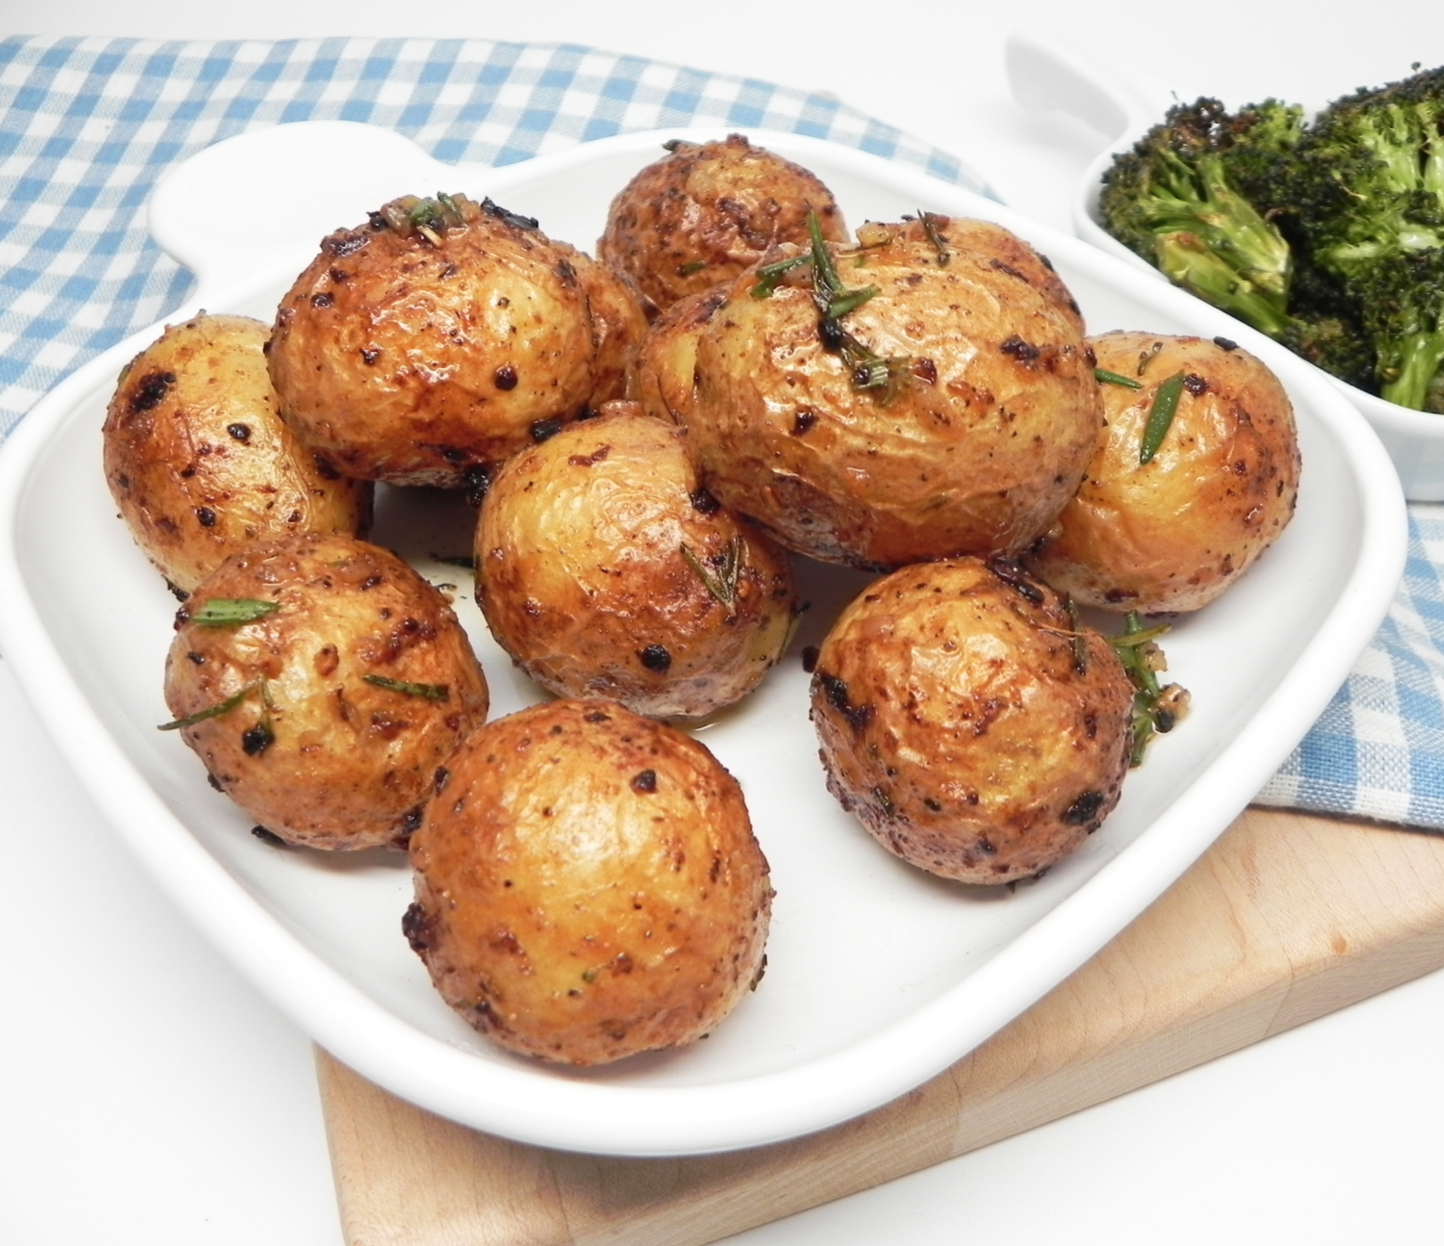 roasted baby potatoes on white serving board with a gingham towel